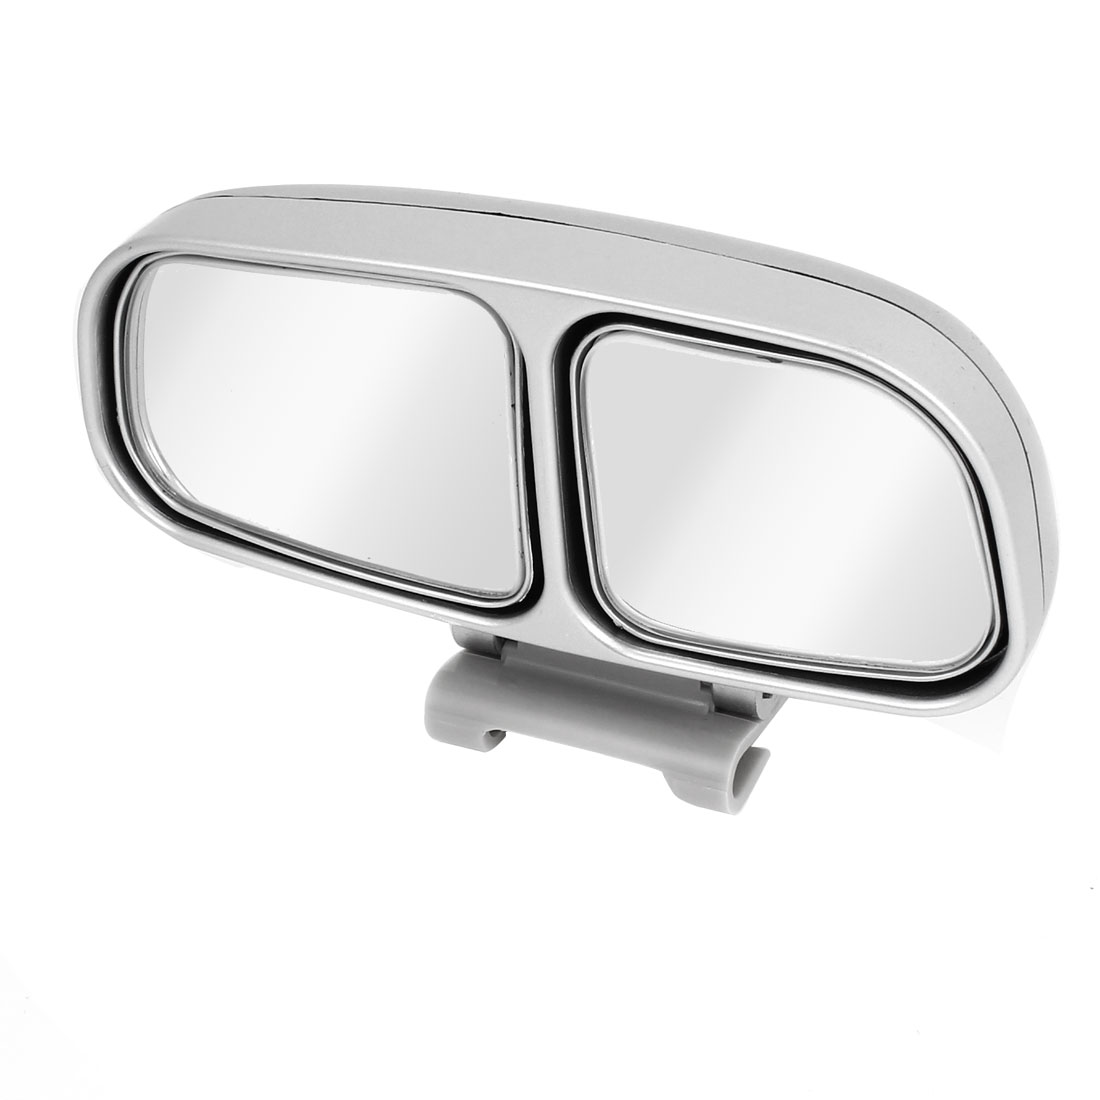 Silver Tone Frame Left Side Rear View Blind Spot Auxiliary Mirror for Auto Car